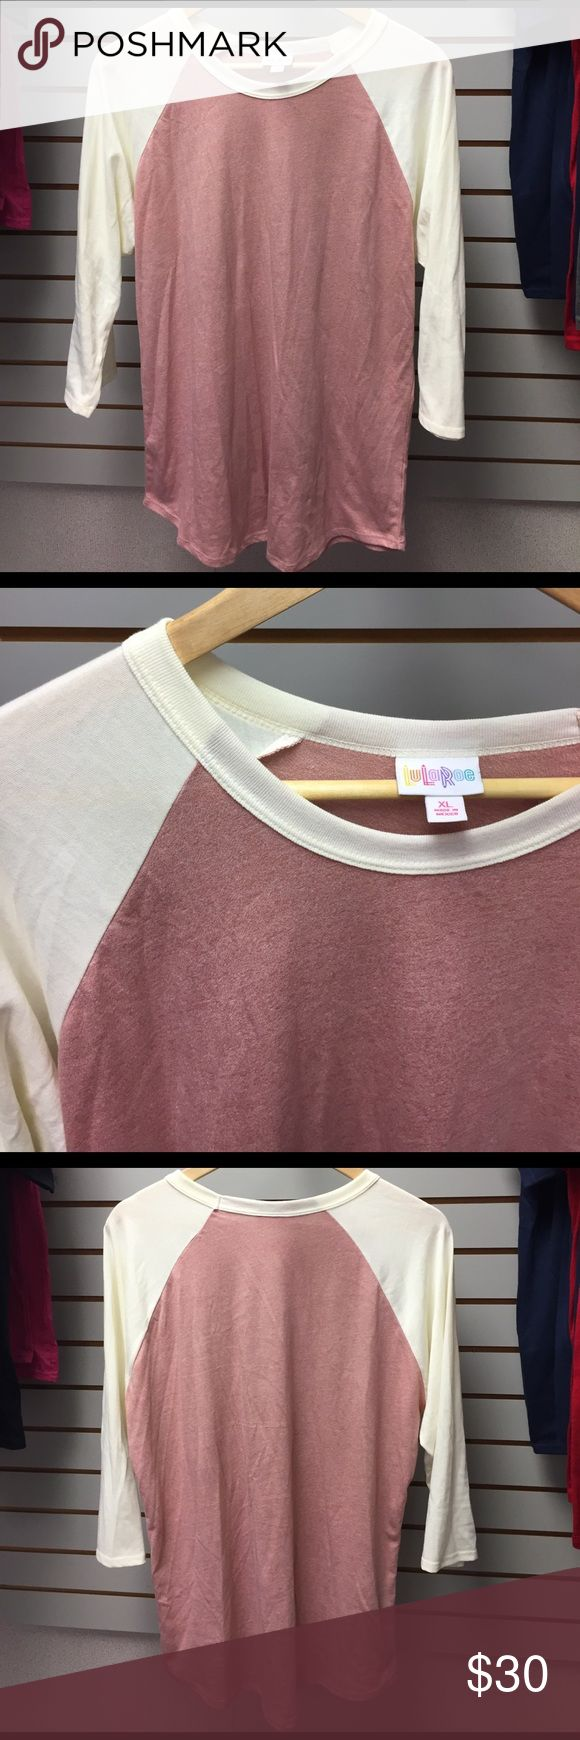 """Lularoe brick red & cream Randy shirt XL Lularoe brick red & cream Randy 3/4 sleeve baseball tee shirt, very gently worn once, no rips holes or stains, women's size XL measures 46"""" bust, 42"""" waist, approx 29"""" total length. 50% cotton 50% polyester. Super soft material with medium stretch. LuLaRoe Tops Tees - Long Sleeve"""